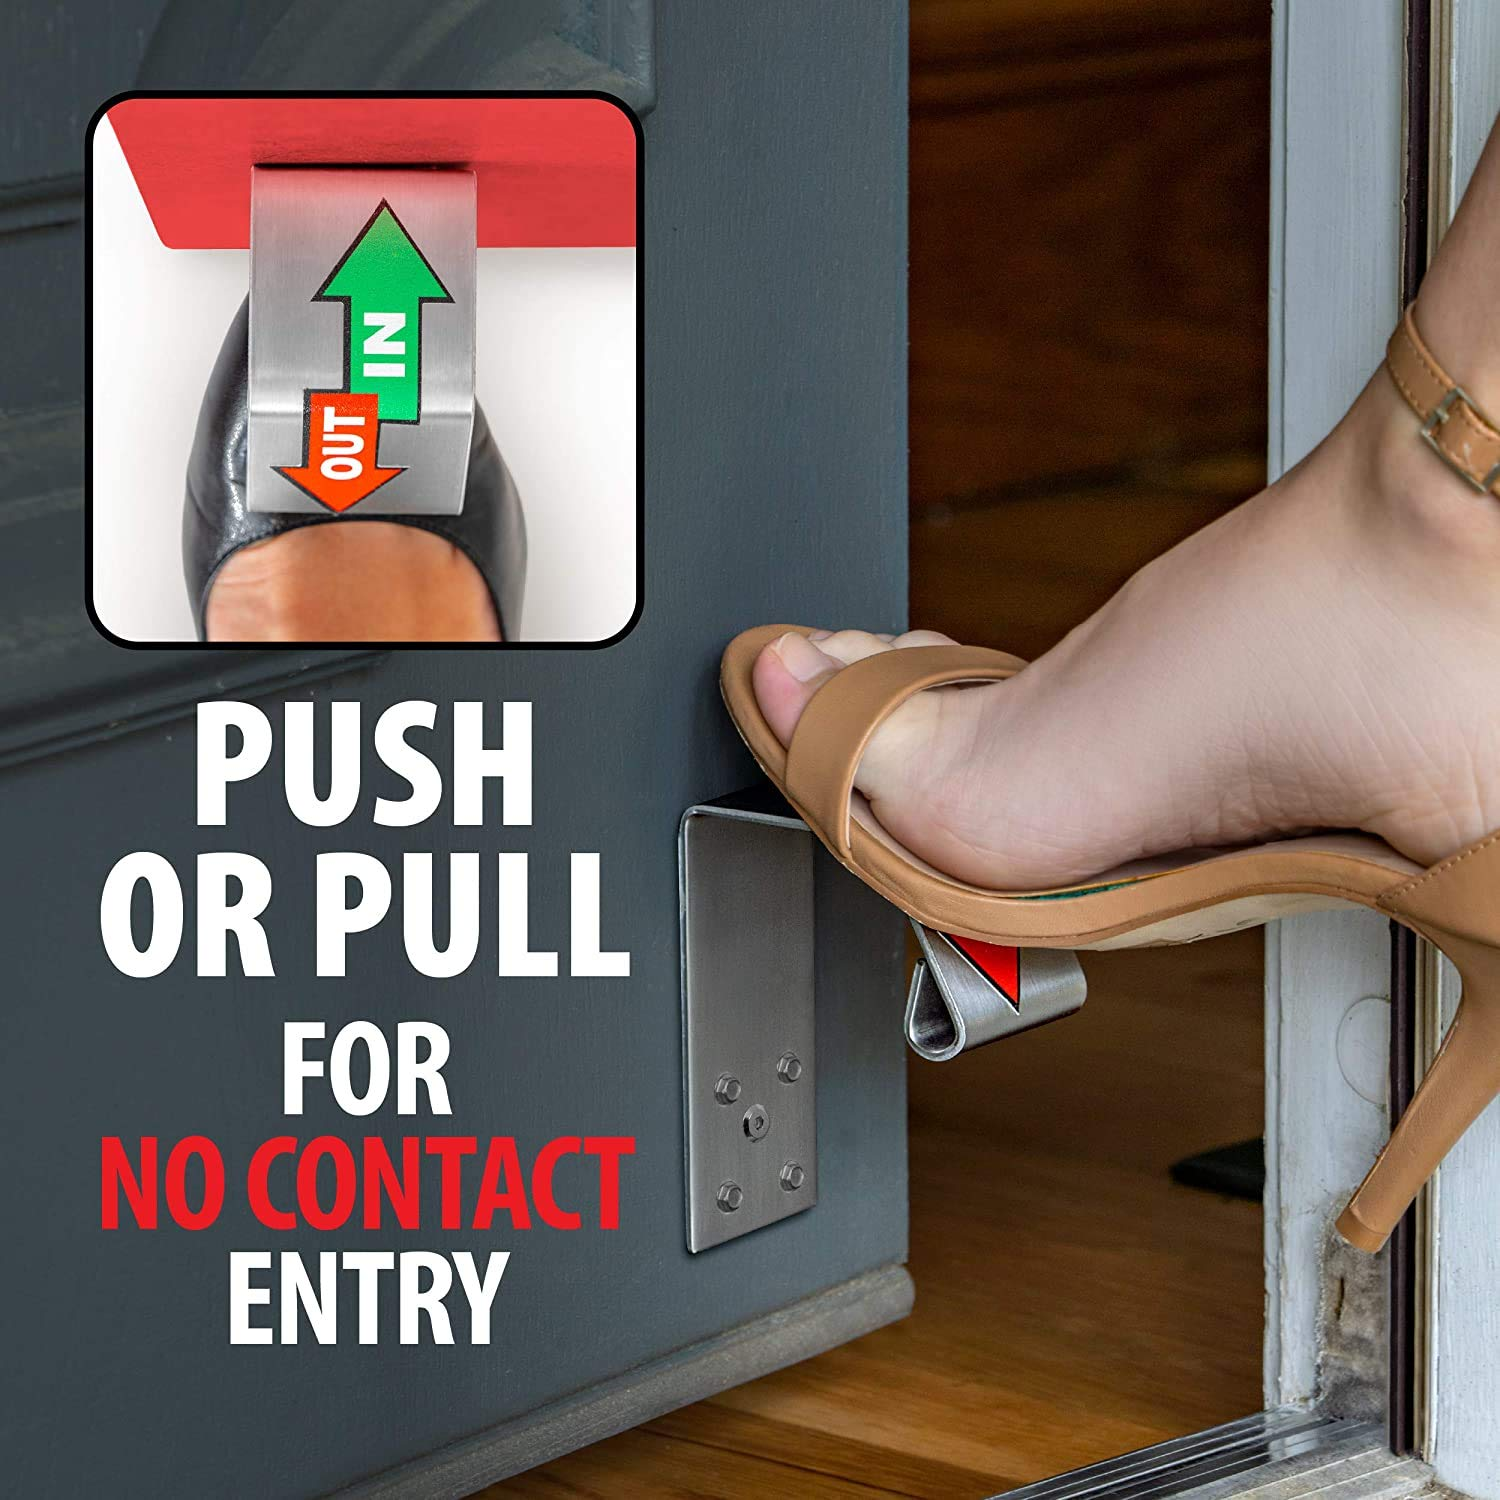 Gentle Rounded Edges are Safe and Non-Abrasive to Shoes and Feet X2 Stainless Steel Contactless Door Hardware for Hands-Free Opening and Closing of Doors No Touch Door Opener Foot Pull /& Push